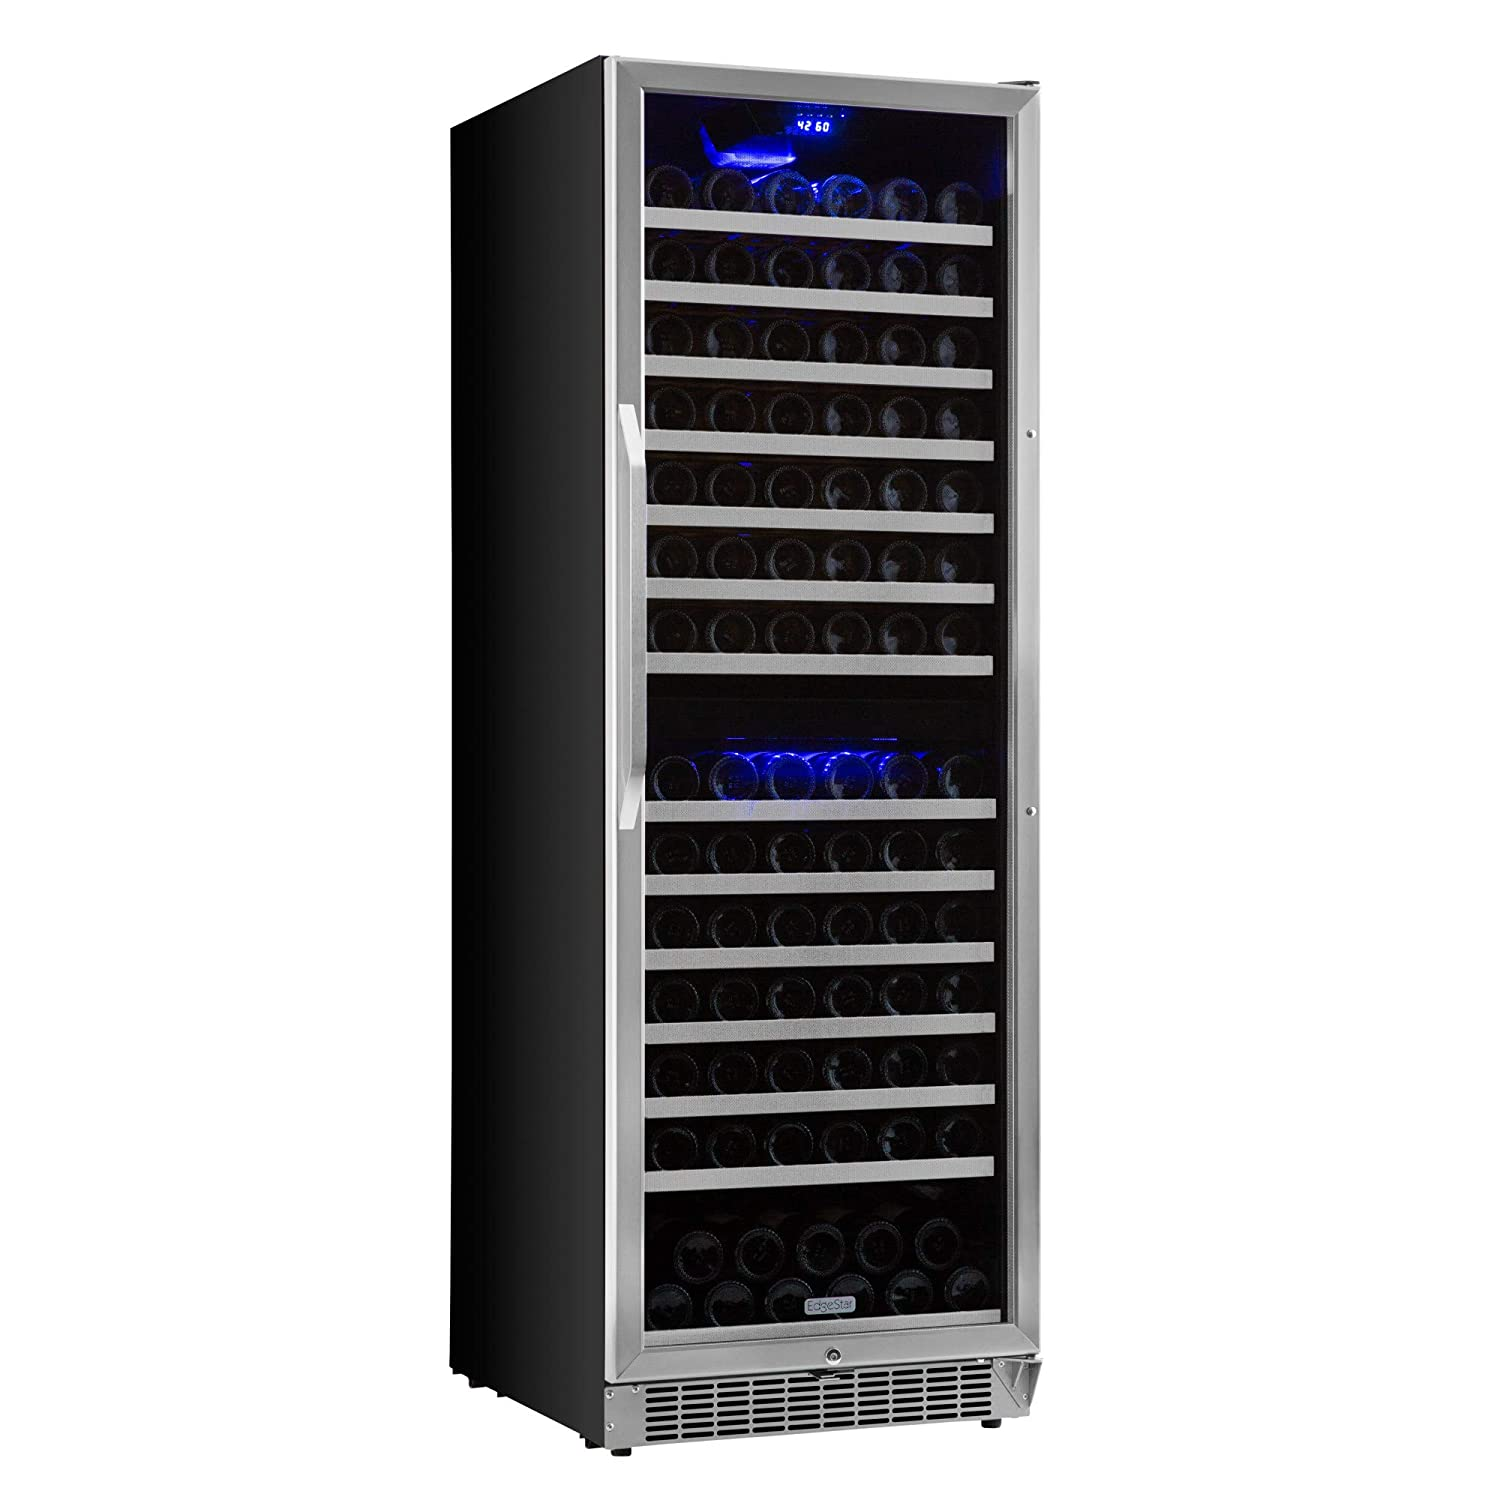 EdgeStar CWR1551DZ 155 Bottle Built-In or Freestanding Dual Zone Wine Cooler - Stainless Steel/Black